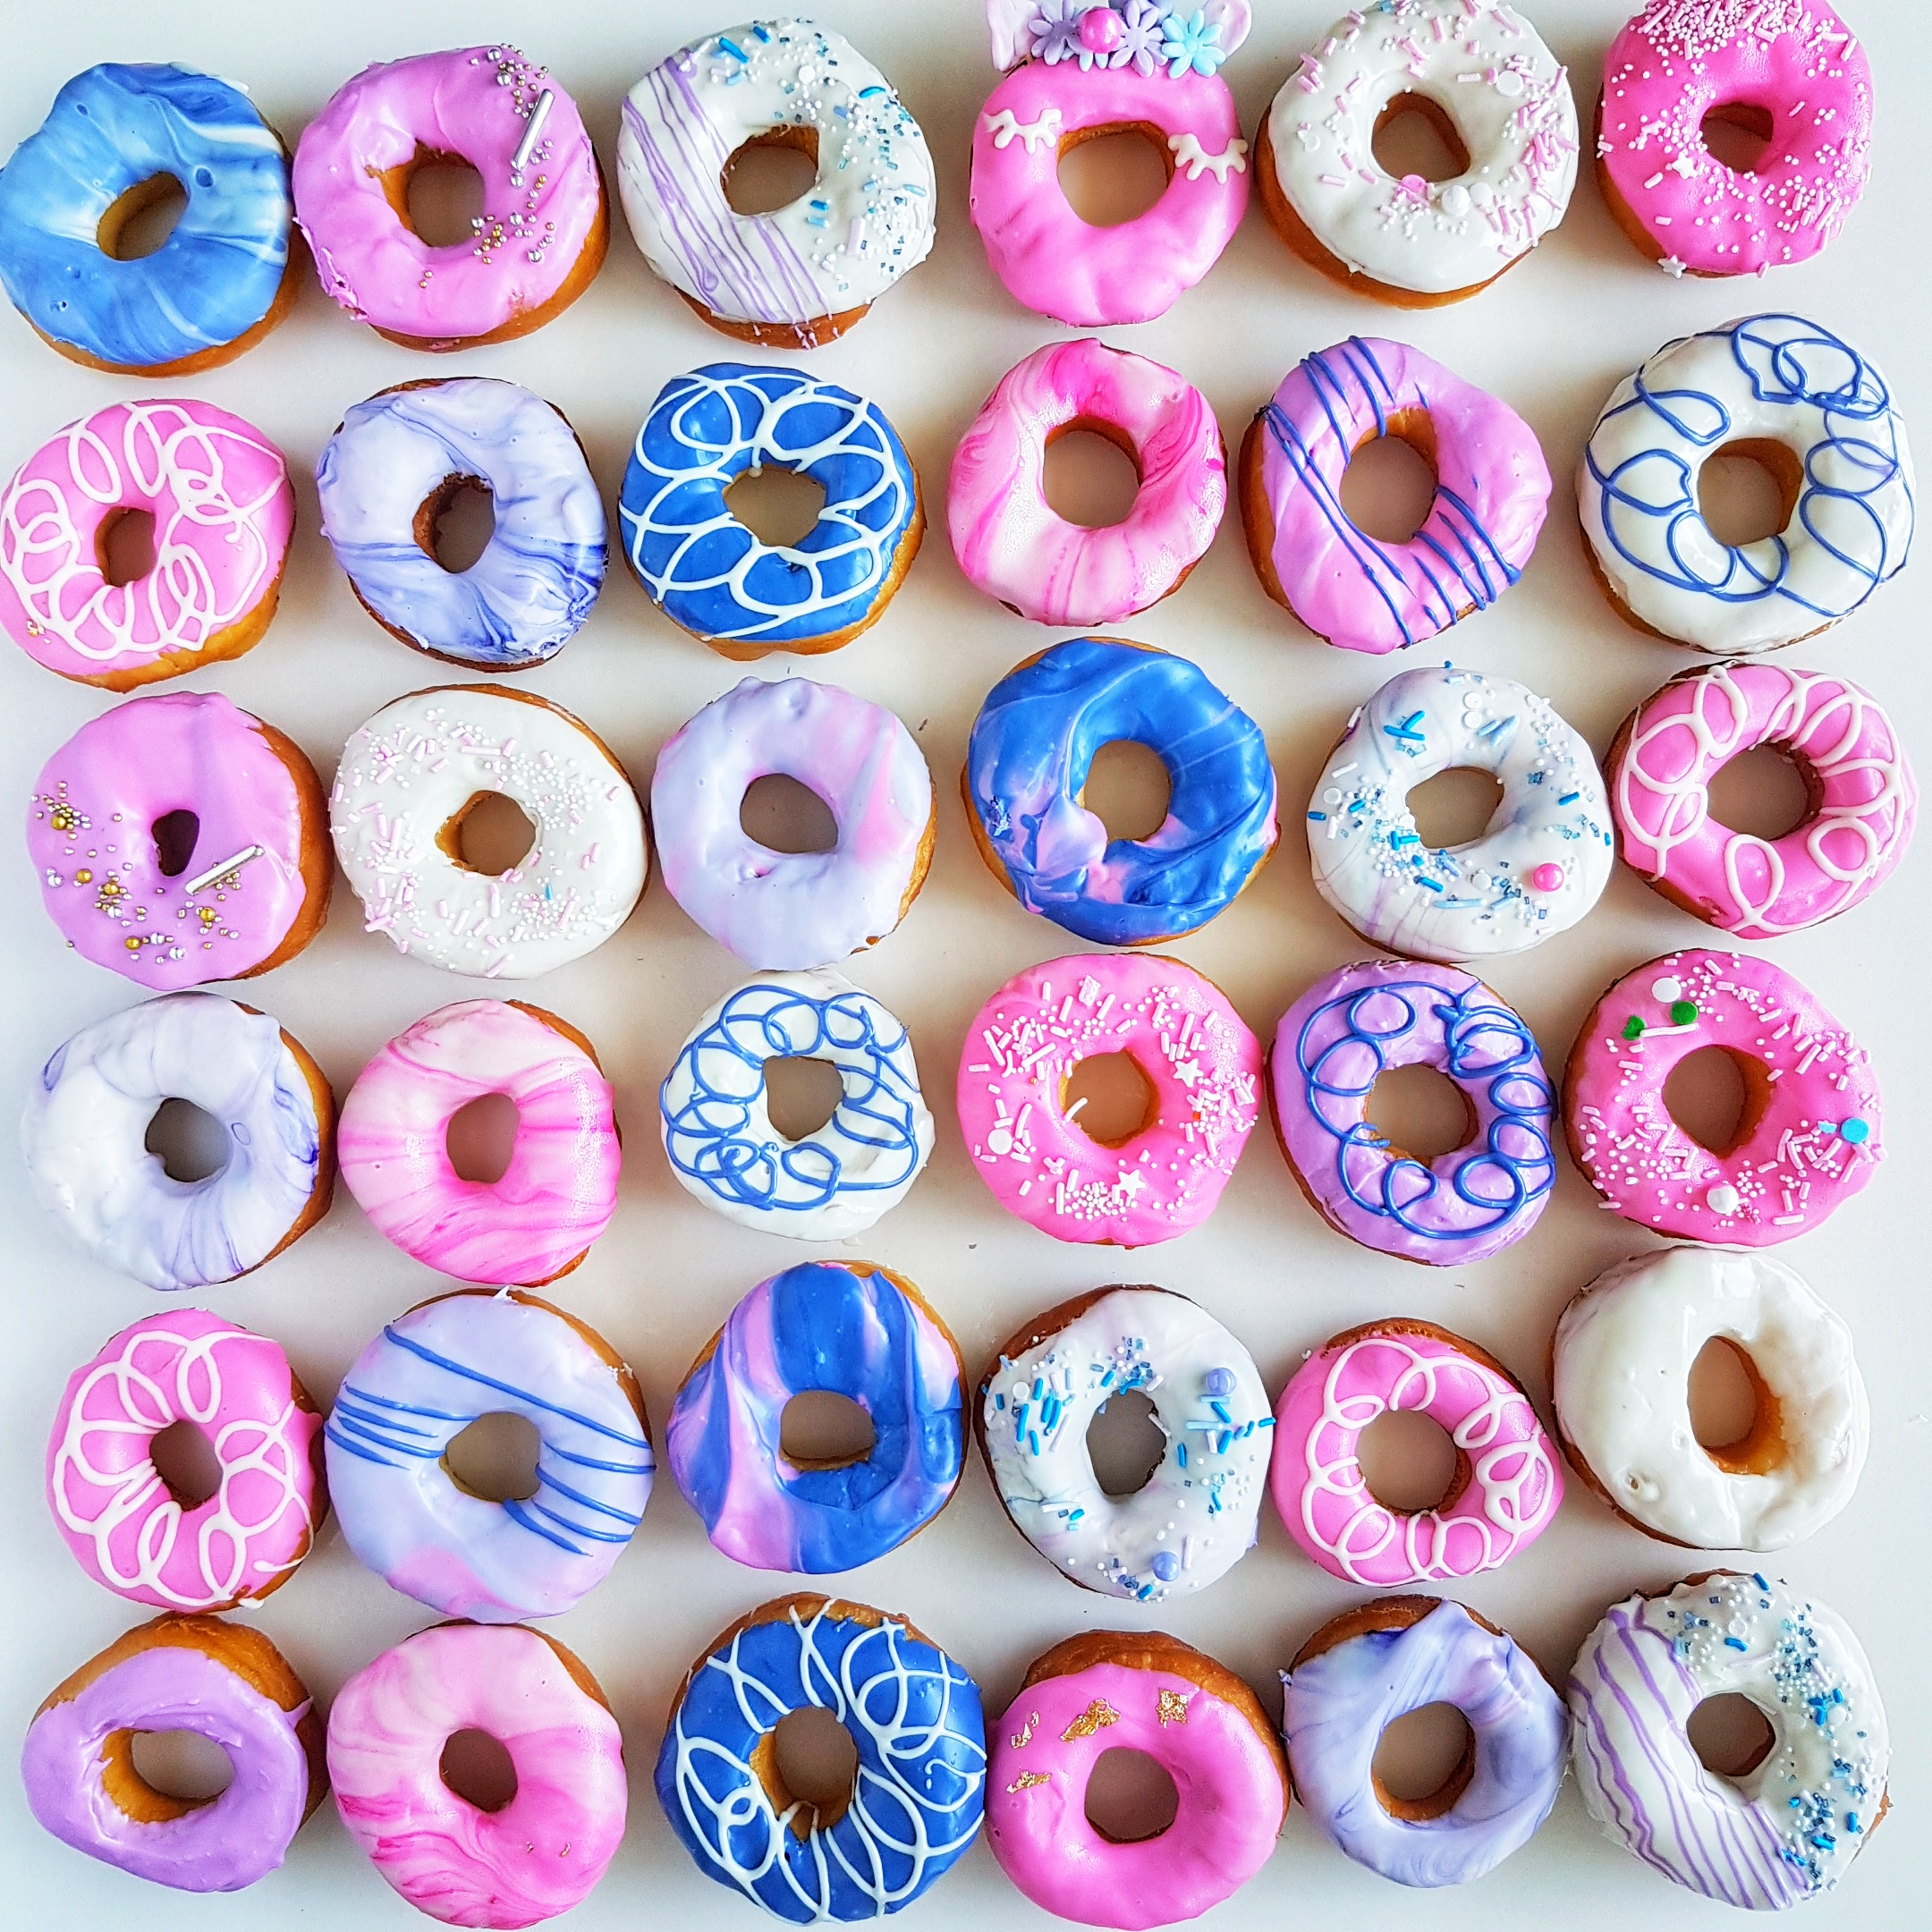 The Baking Experiment Donuts